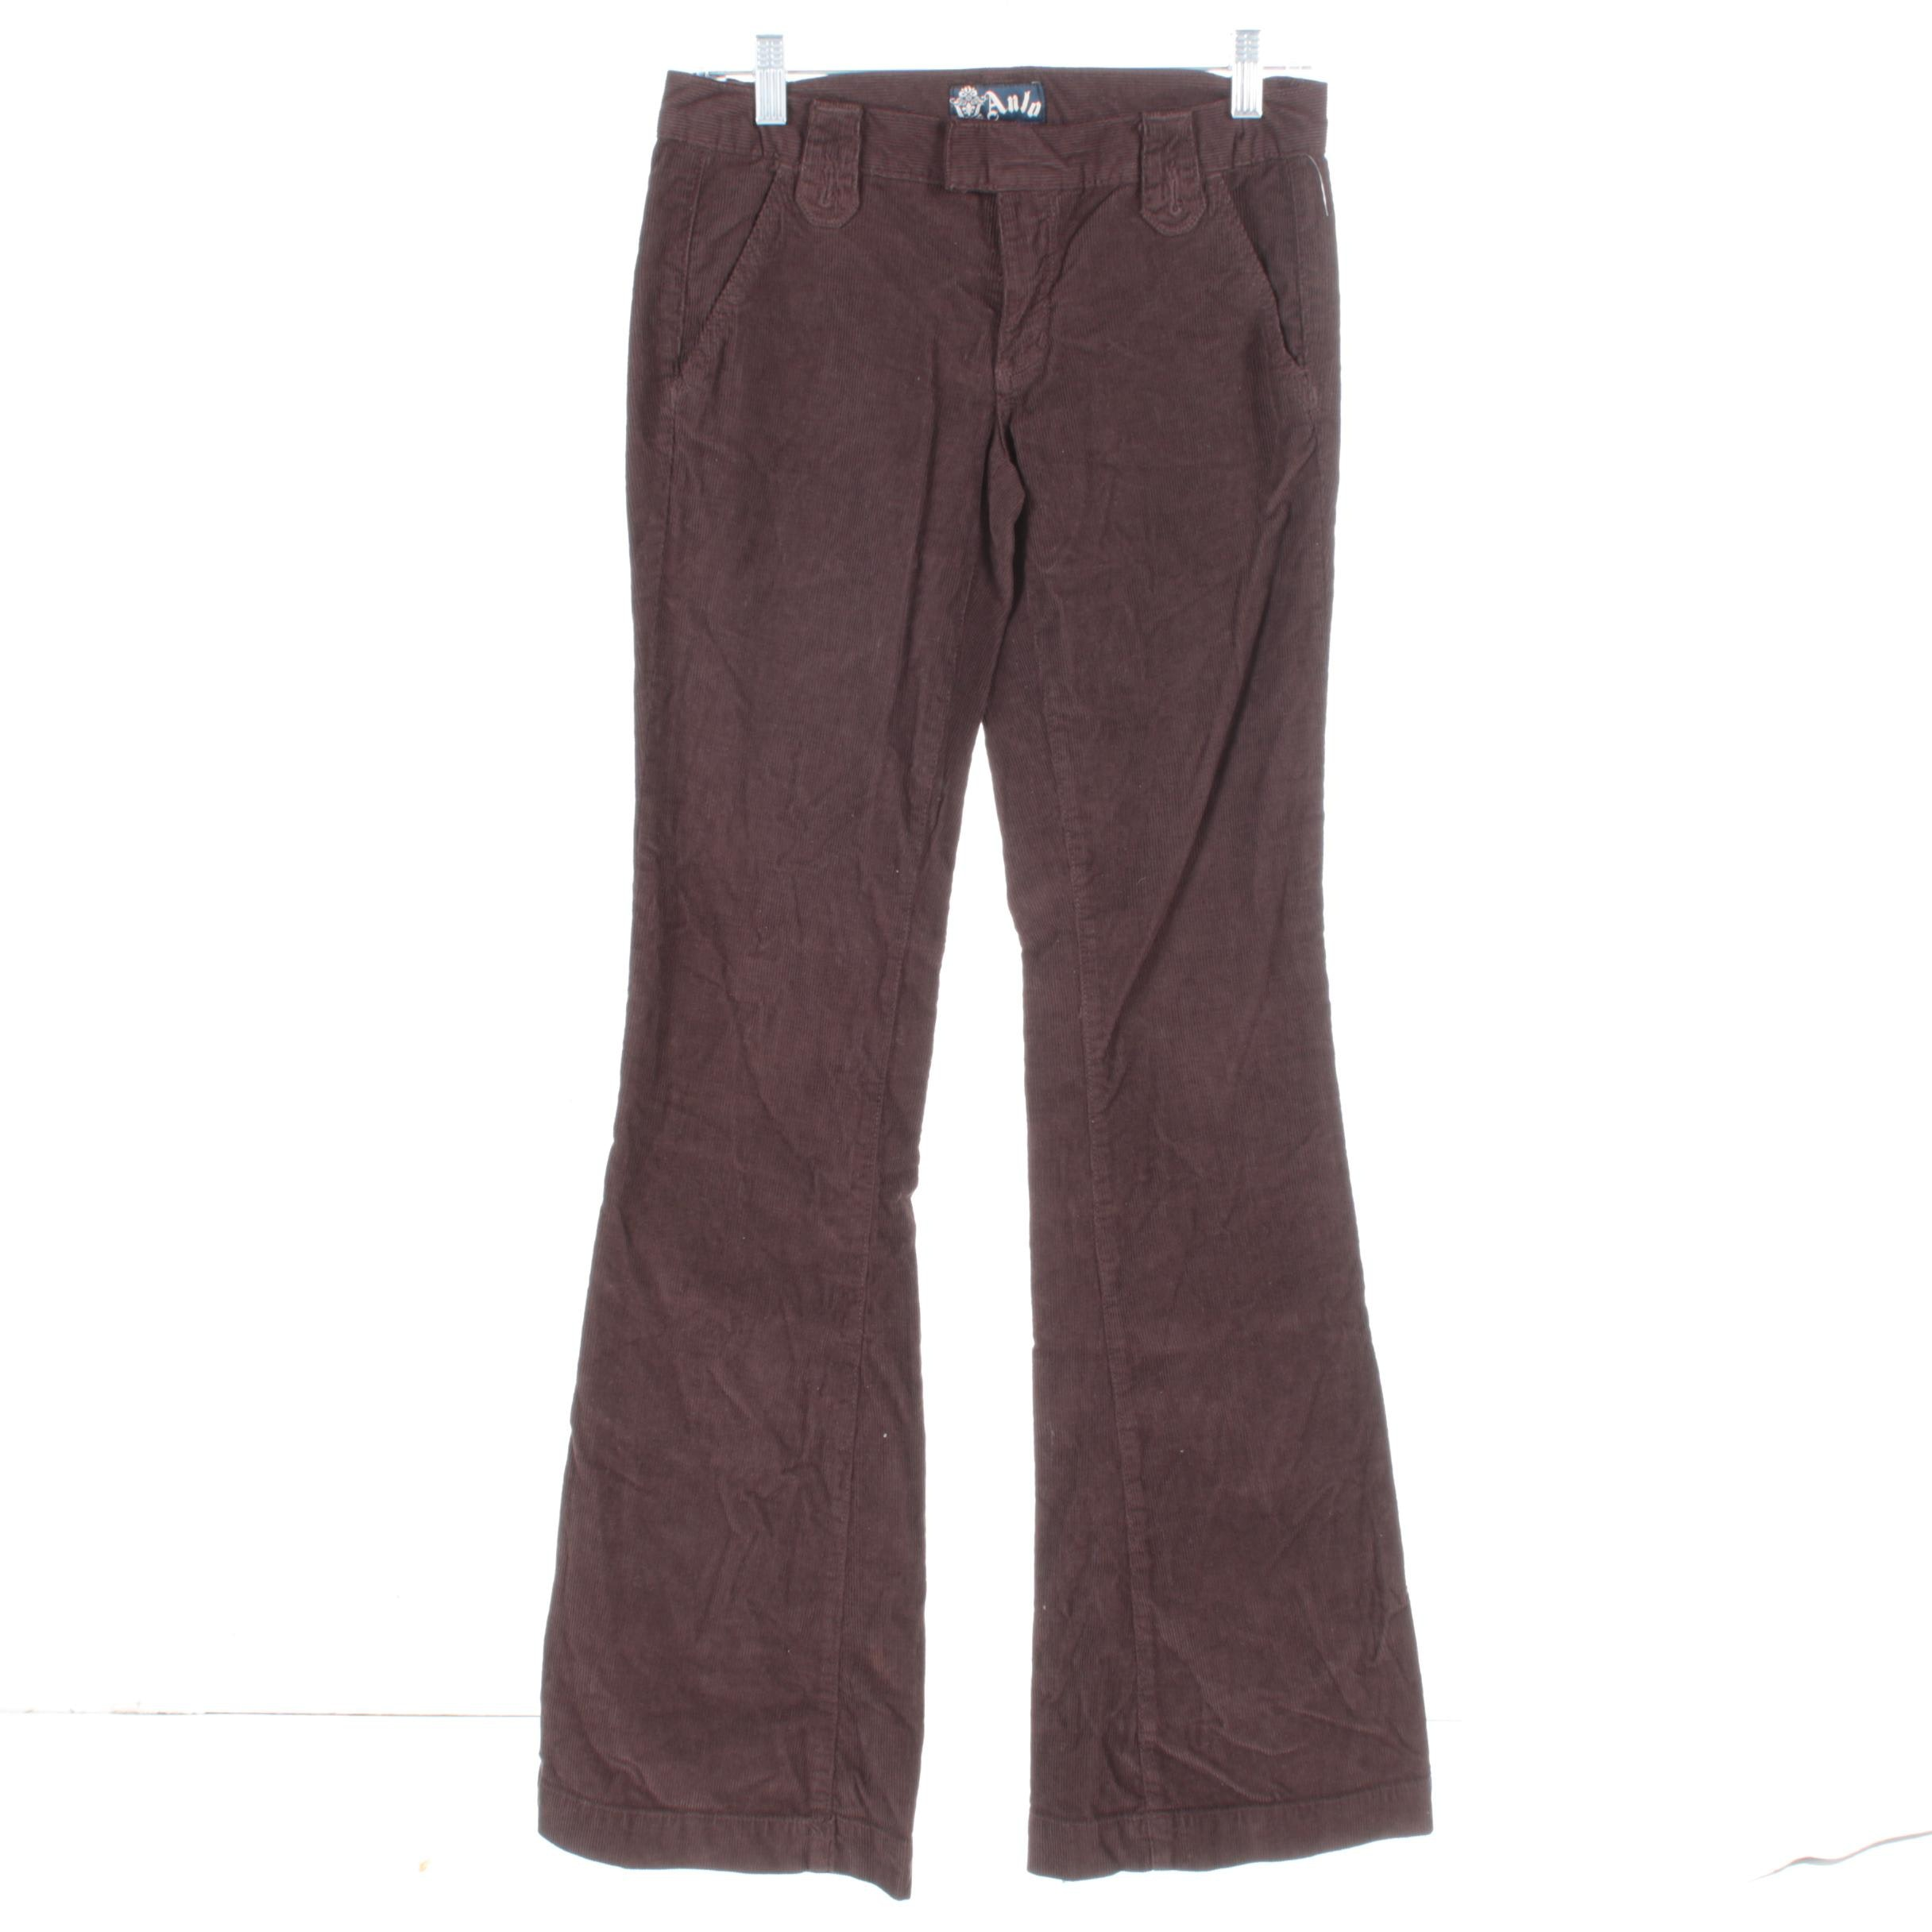 Women's Anlo Brown Corduroy Boot Cut Pants